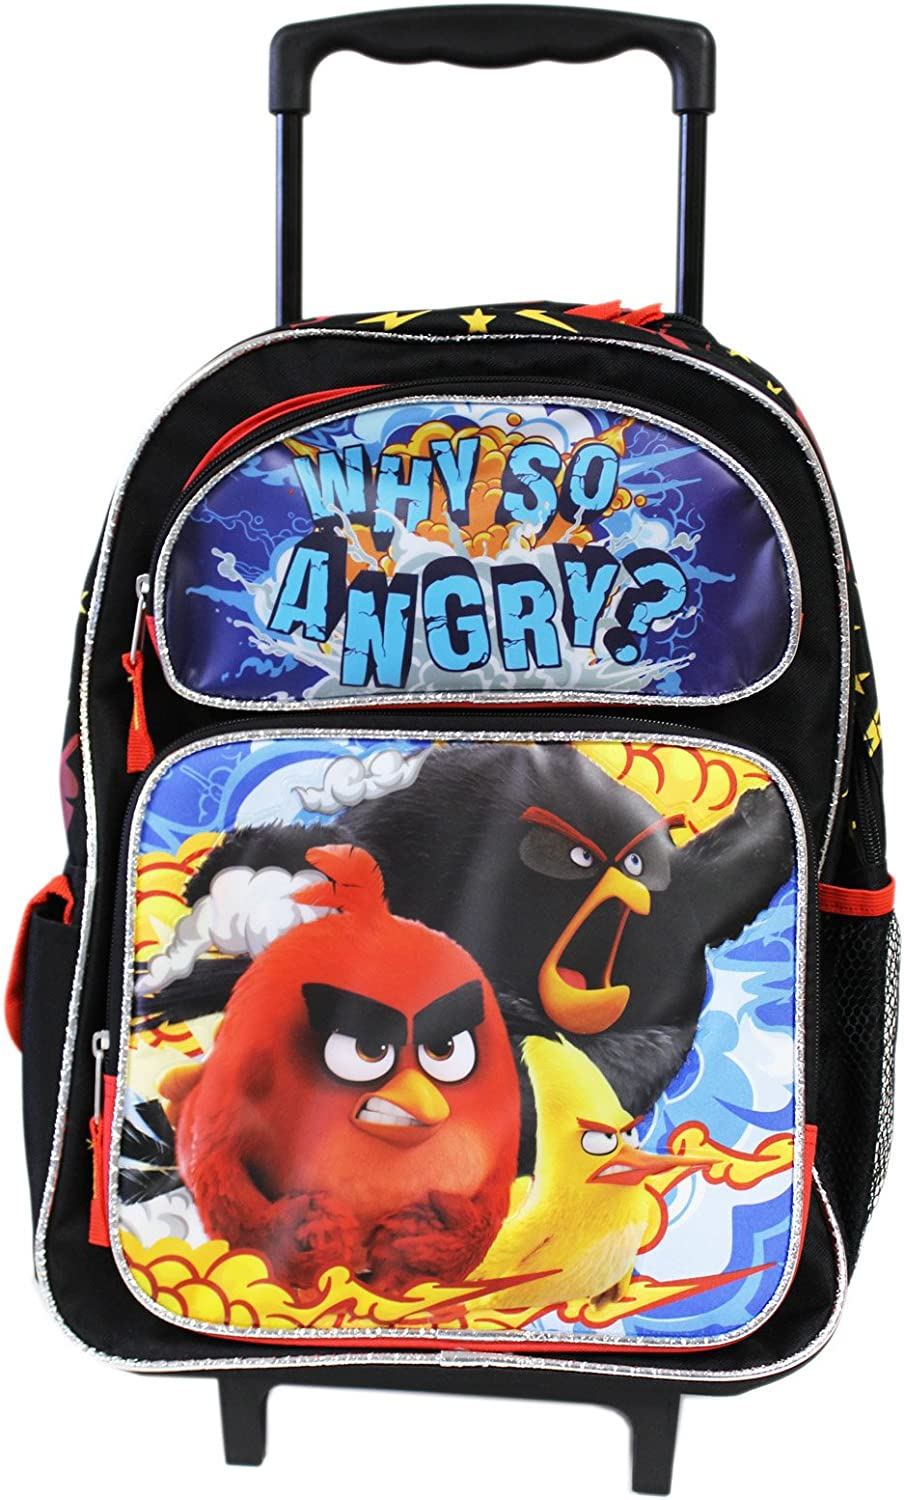 Large Rolling Backpack  Angry Birds  Movie New 137599